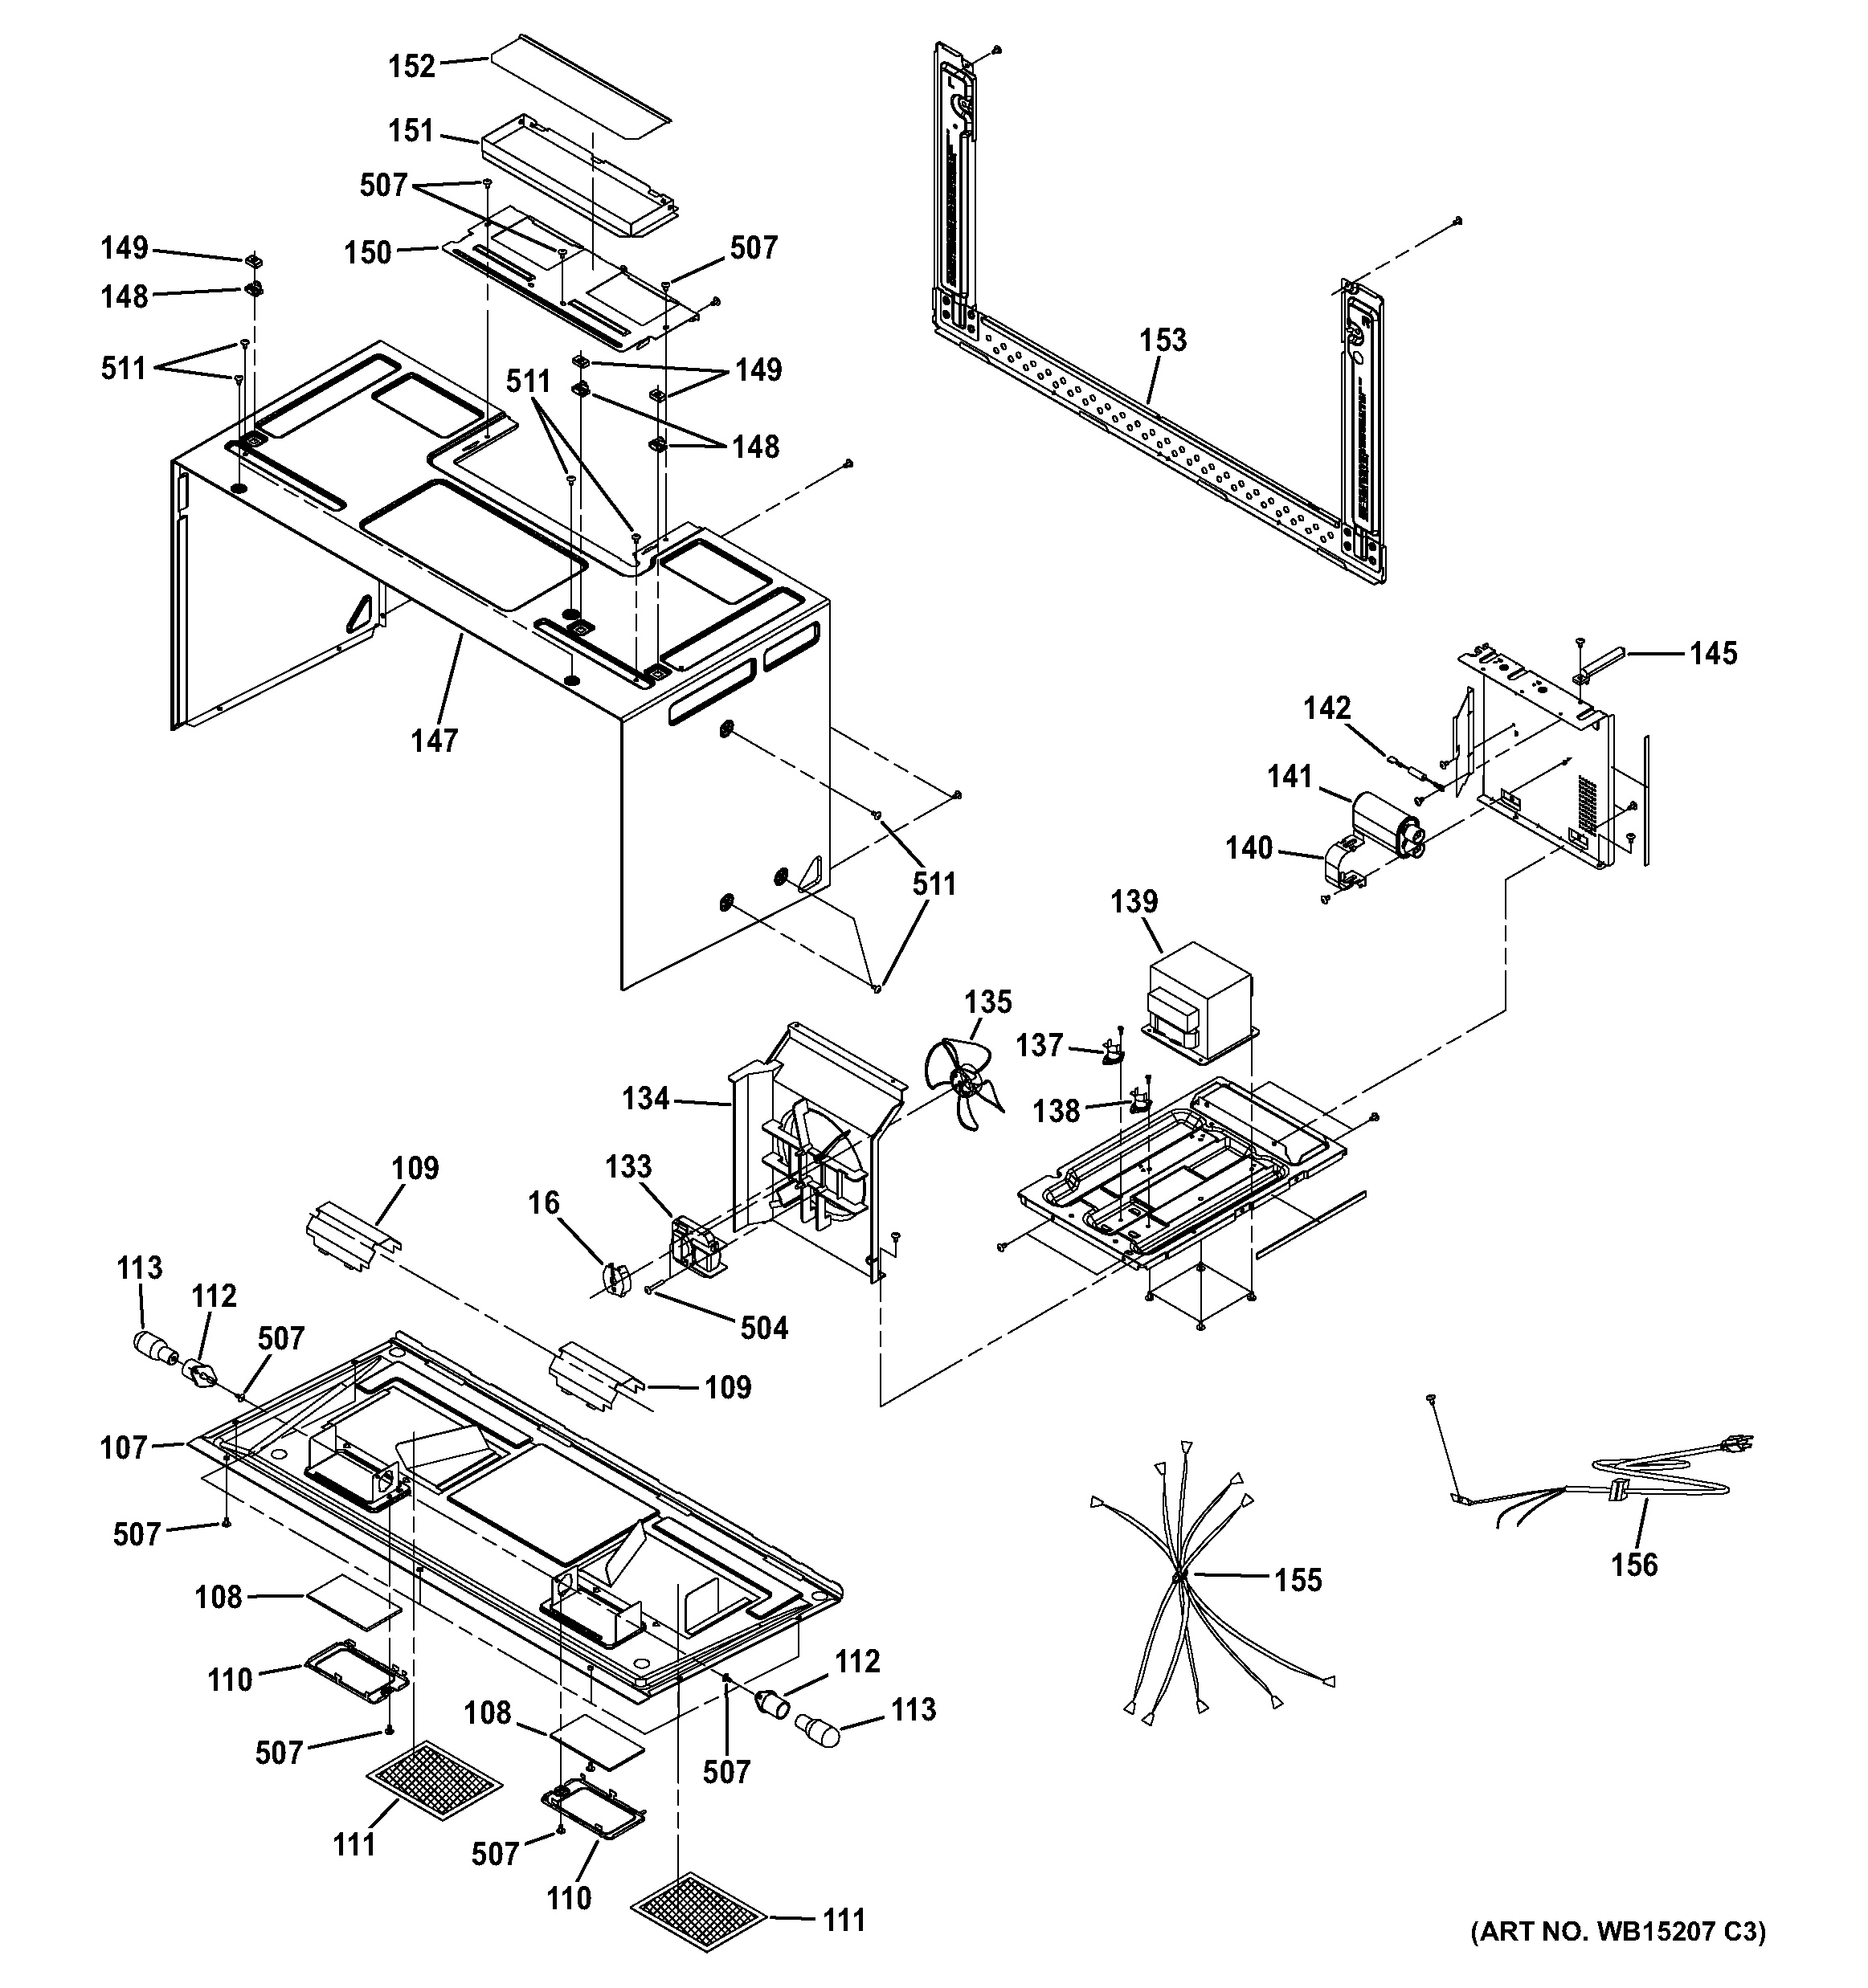 assembly view for interior parts